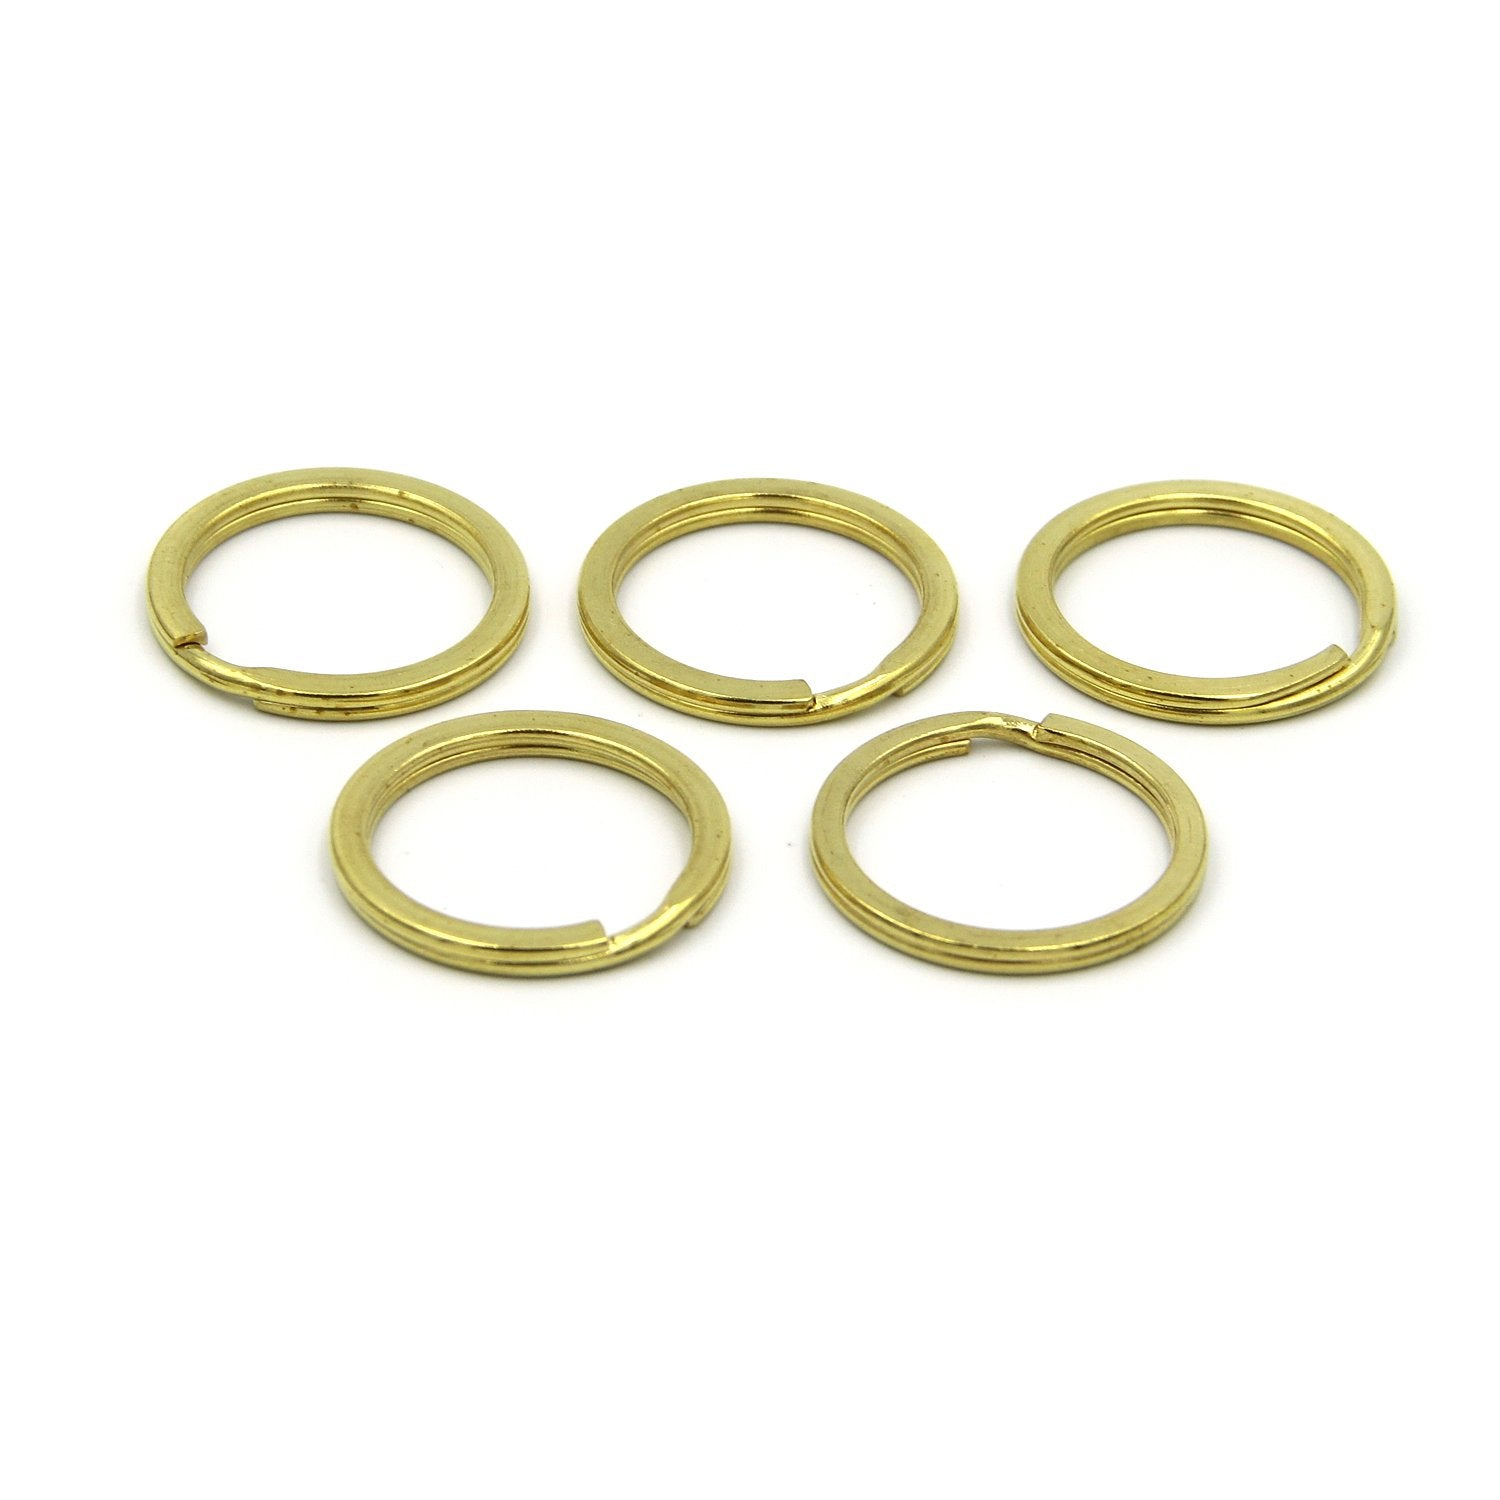 Solid brass split key rings, Large split rings, Brass split rings uk - Metal Field